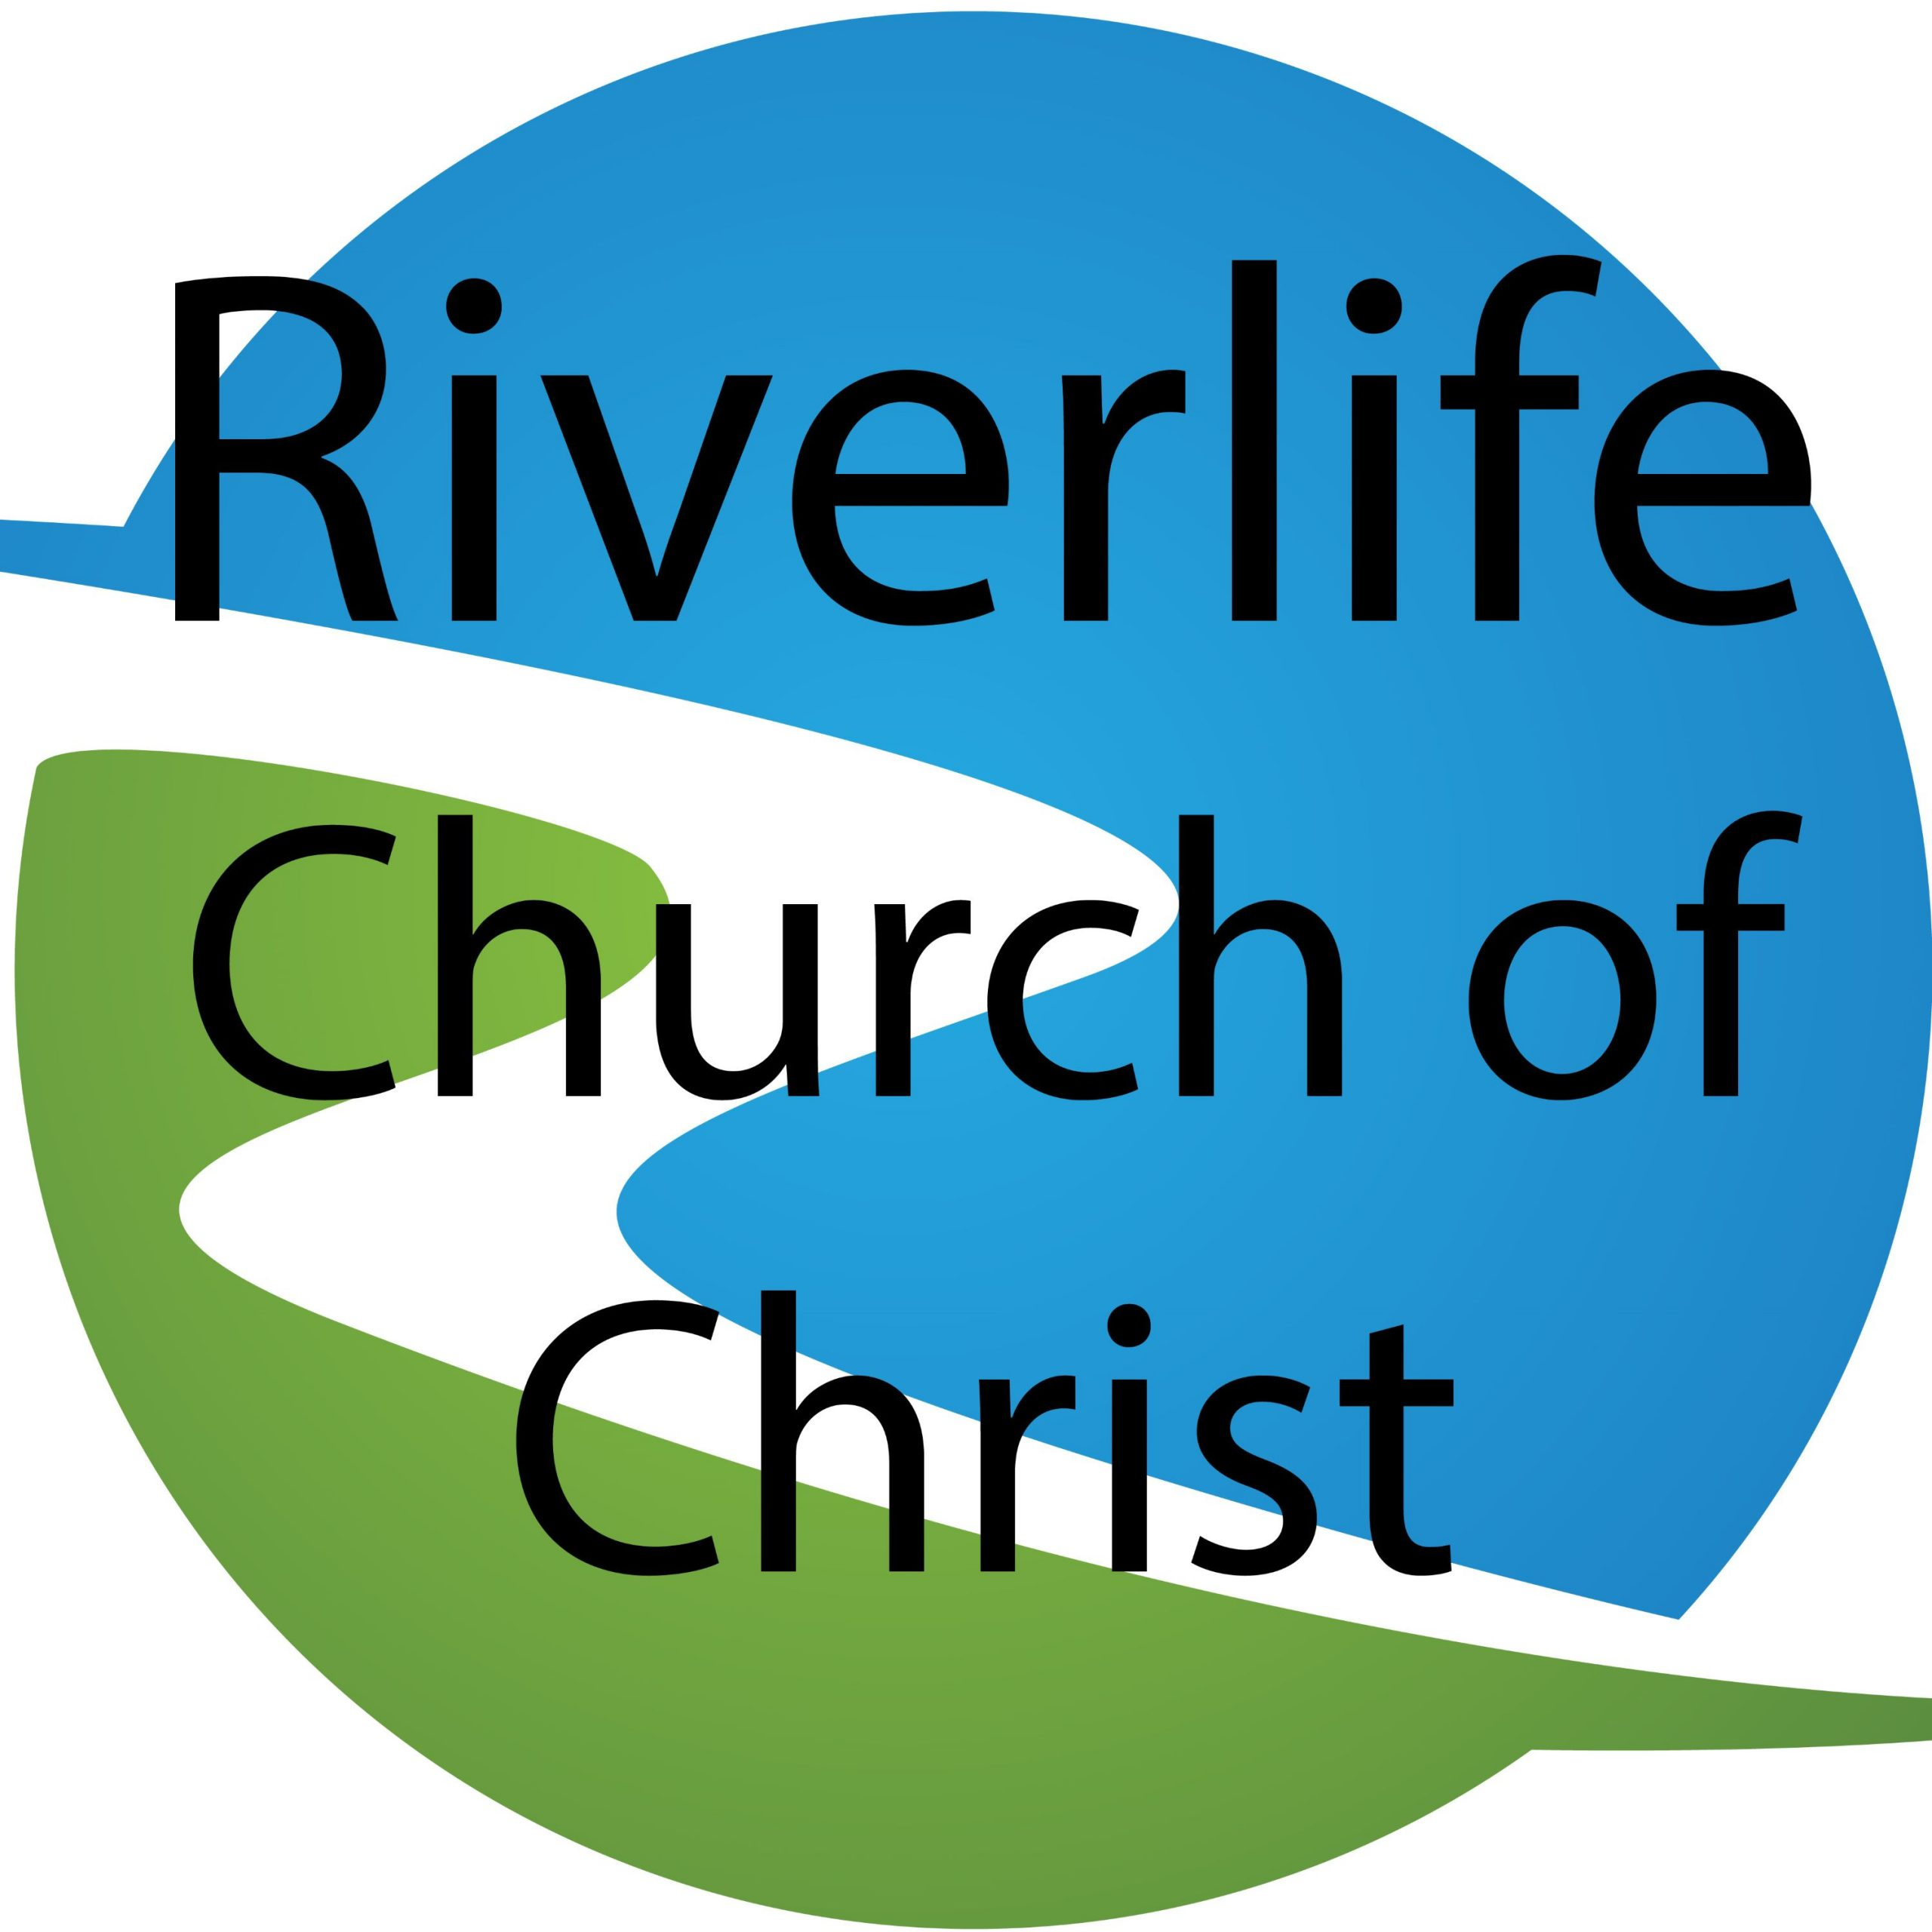 Riverlife Church of Christ